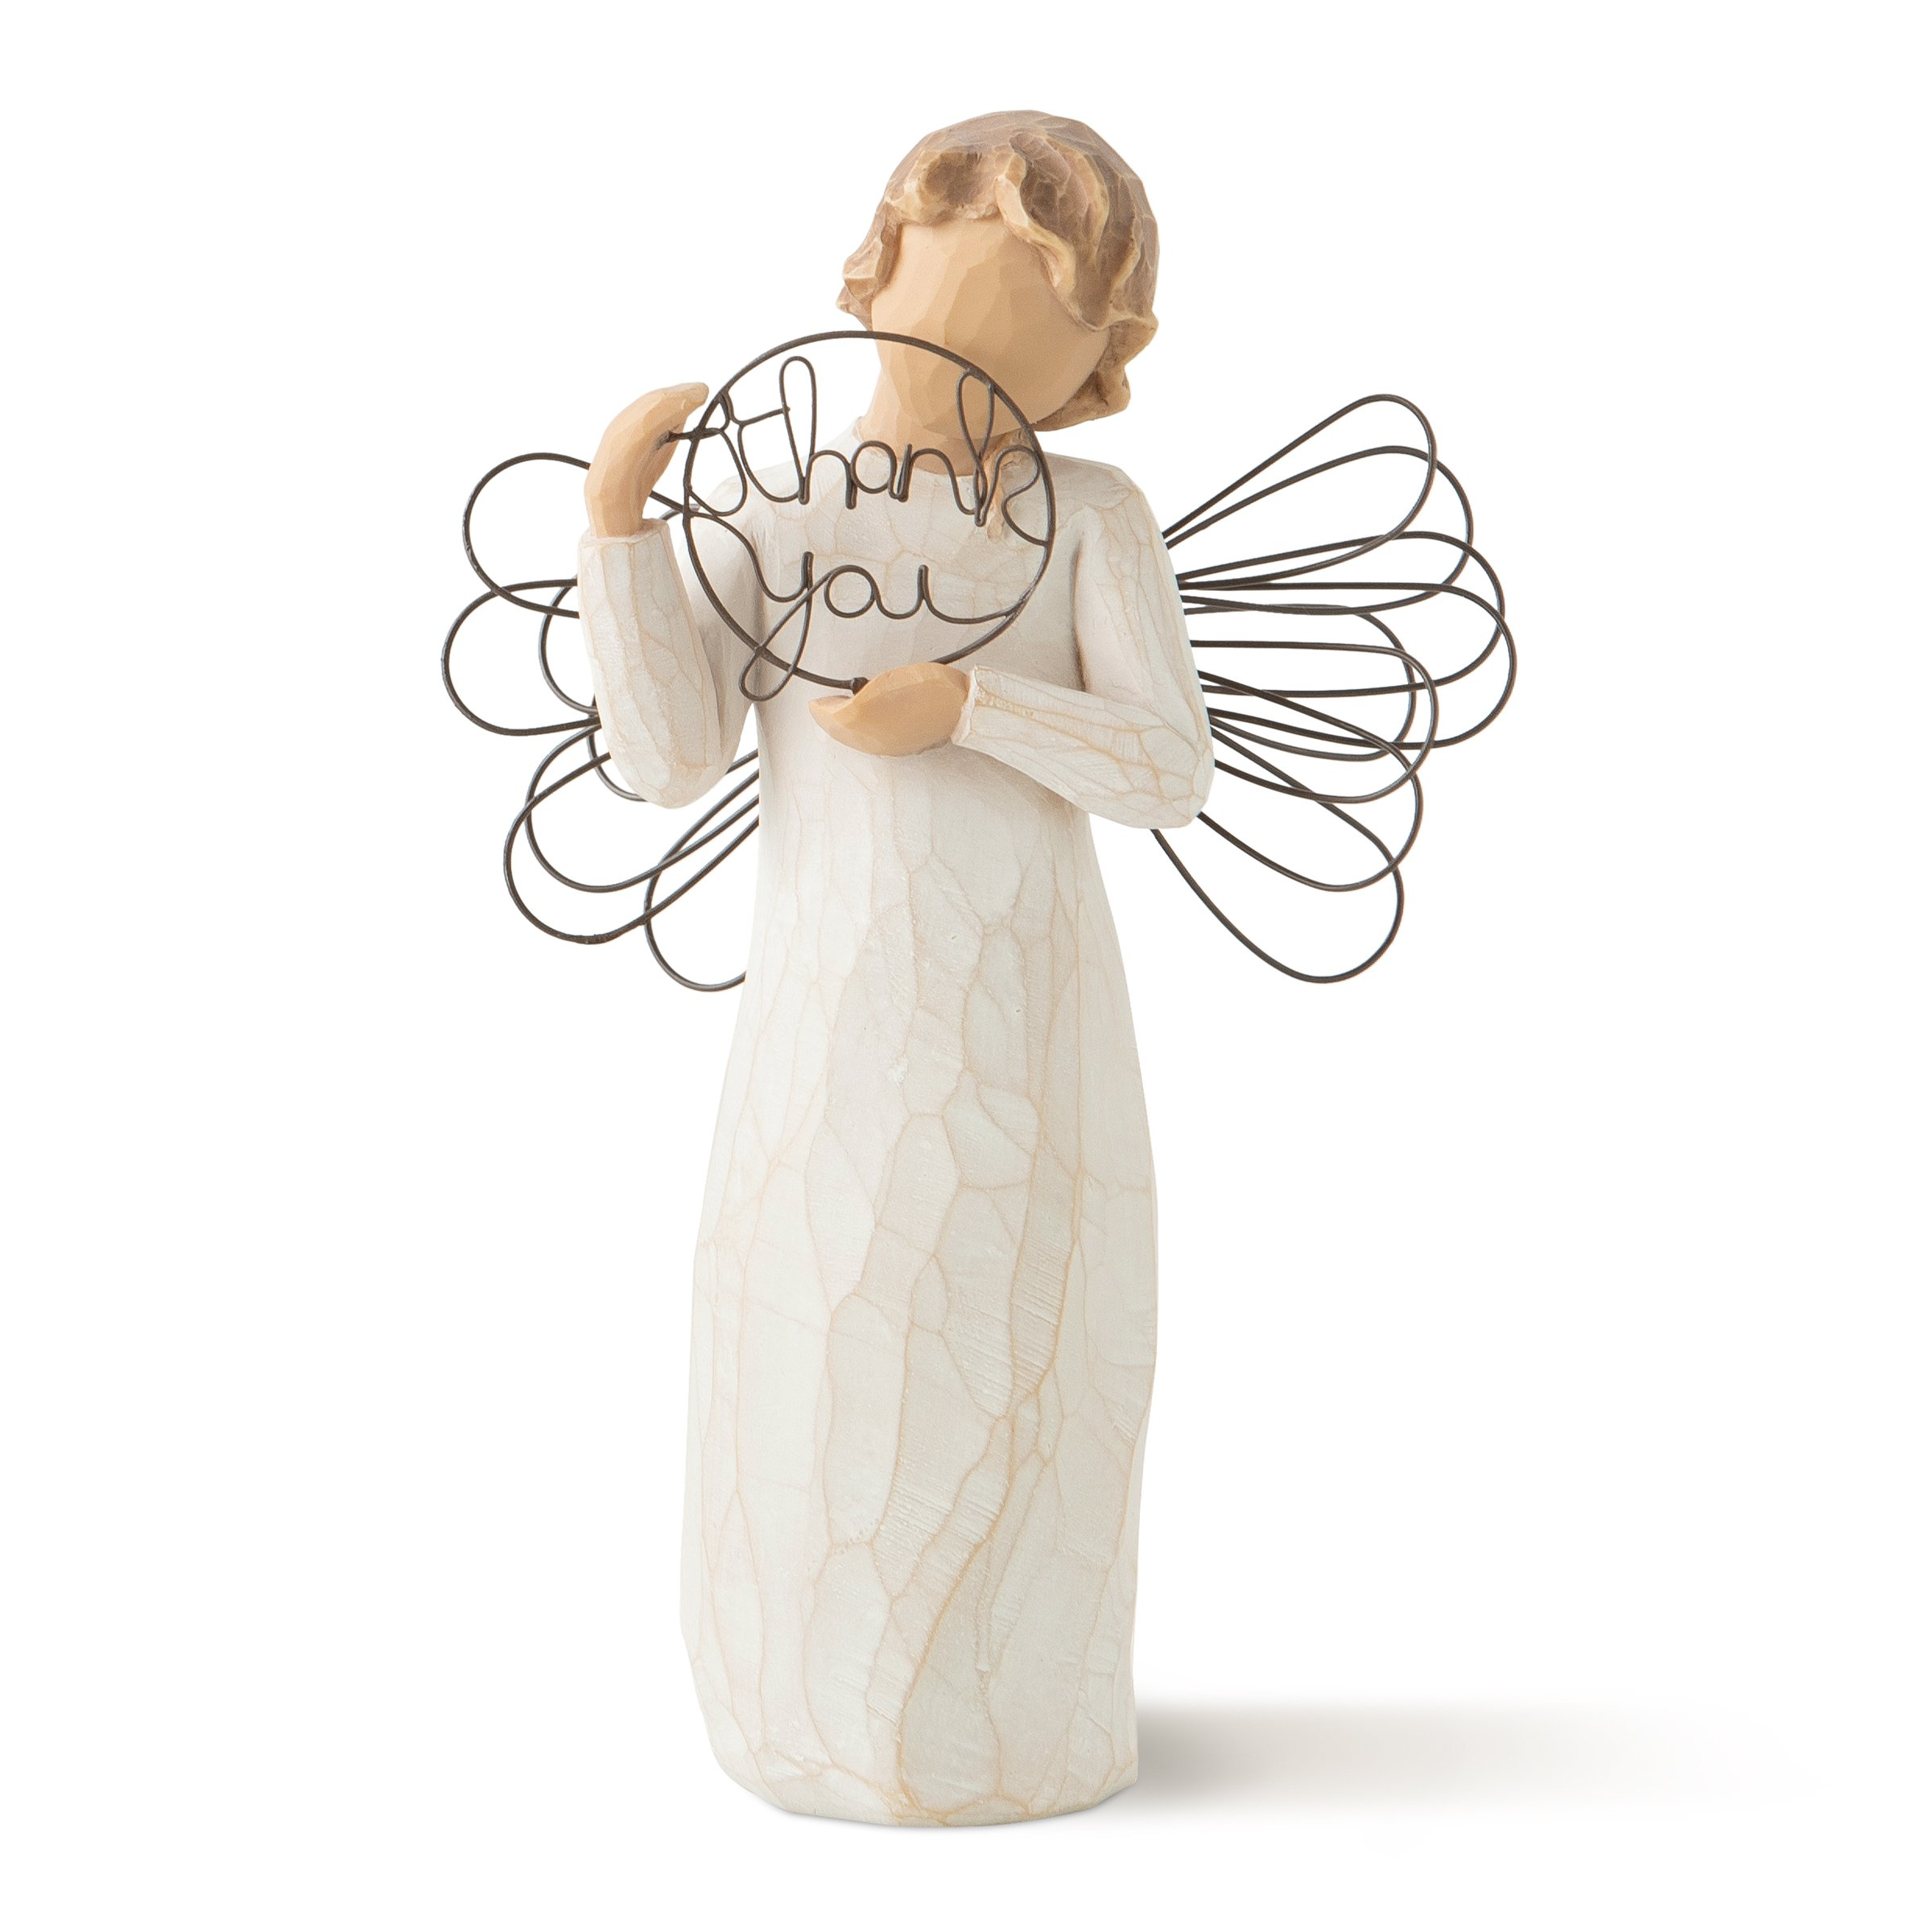 Willow Tree hand-painted sculpted angel,  Just for You by Willow Tree